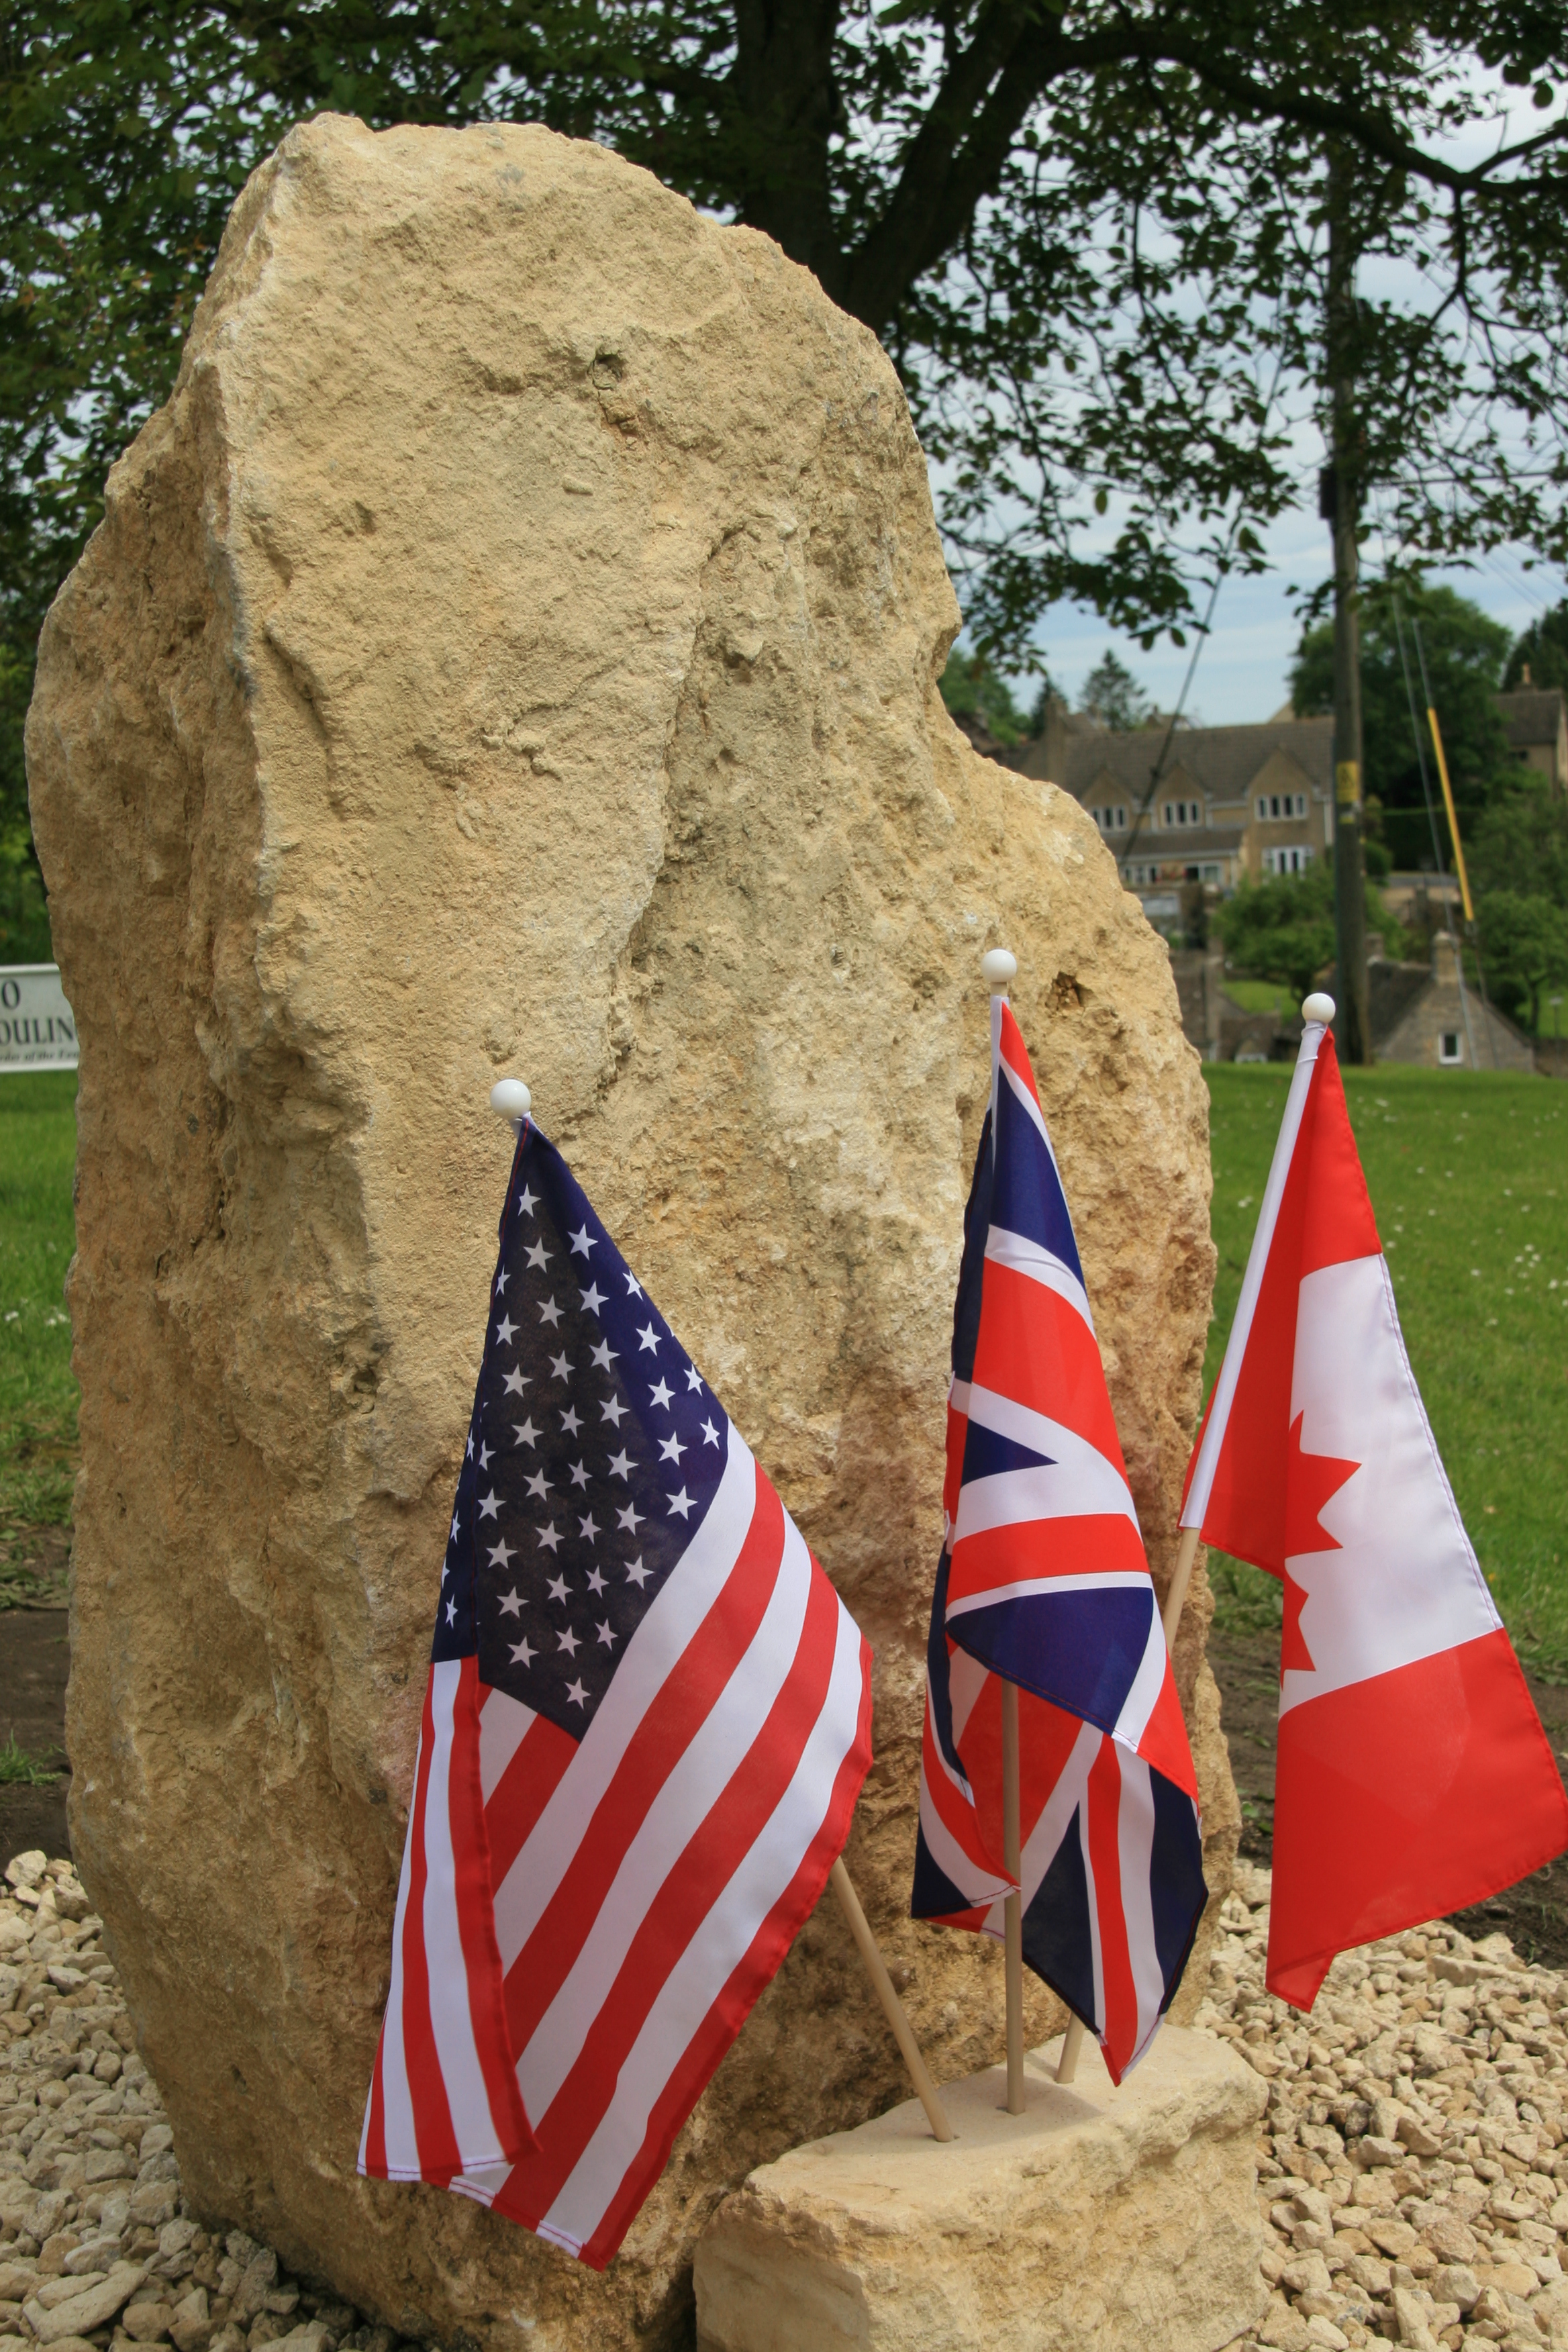 For Many 2014 Is A Special Year Not Only Because It The Centenary Of Start World War One But Also Marks 70th Anniversary D Day